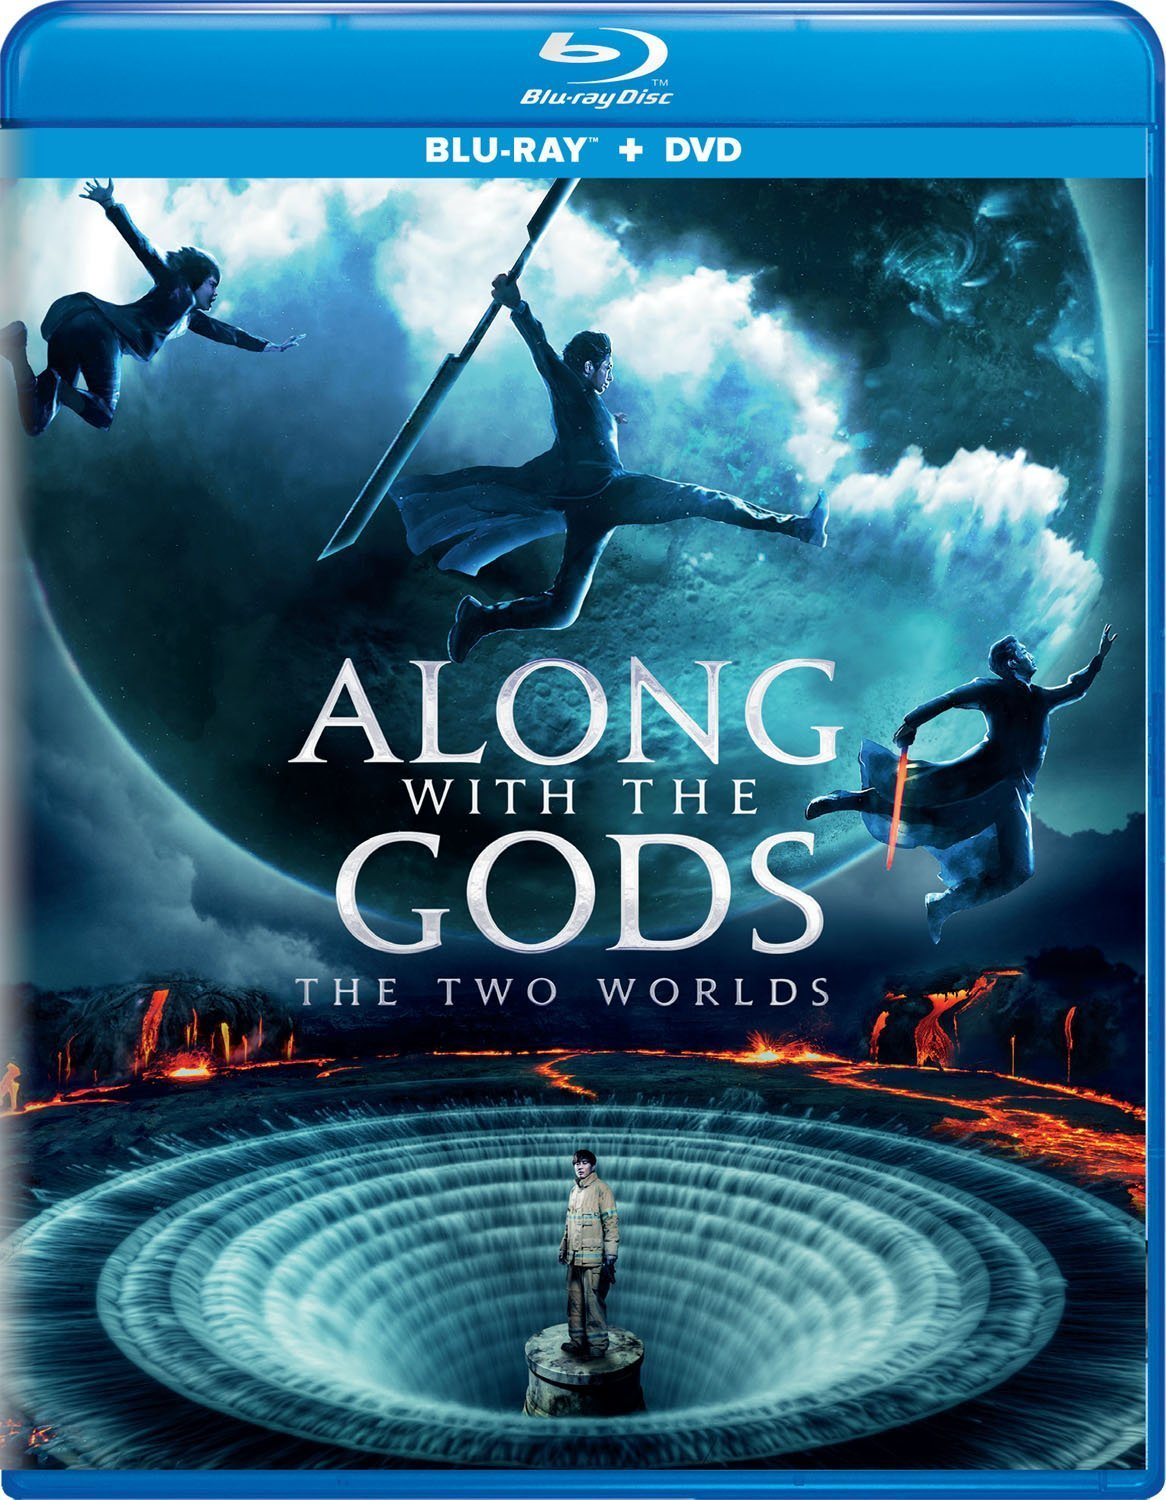 Along with the Gods: The Two Worlds (2017) Blu-ray